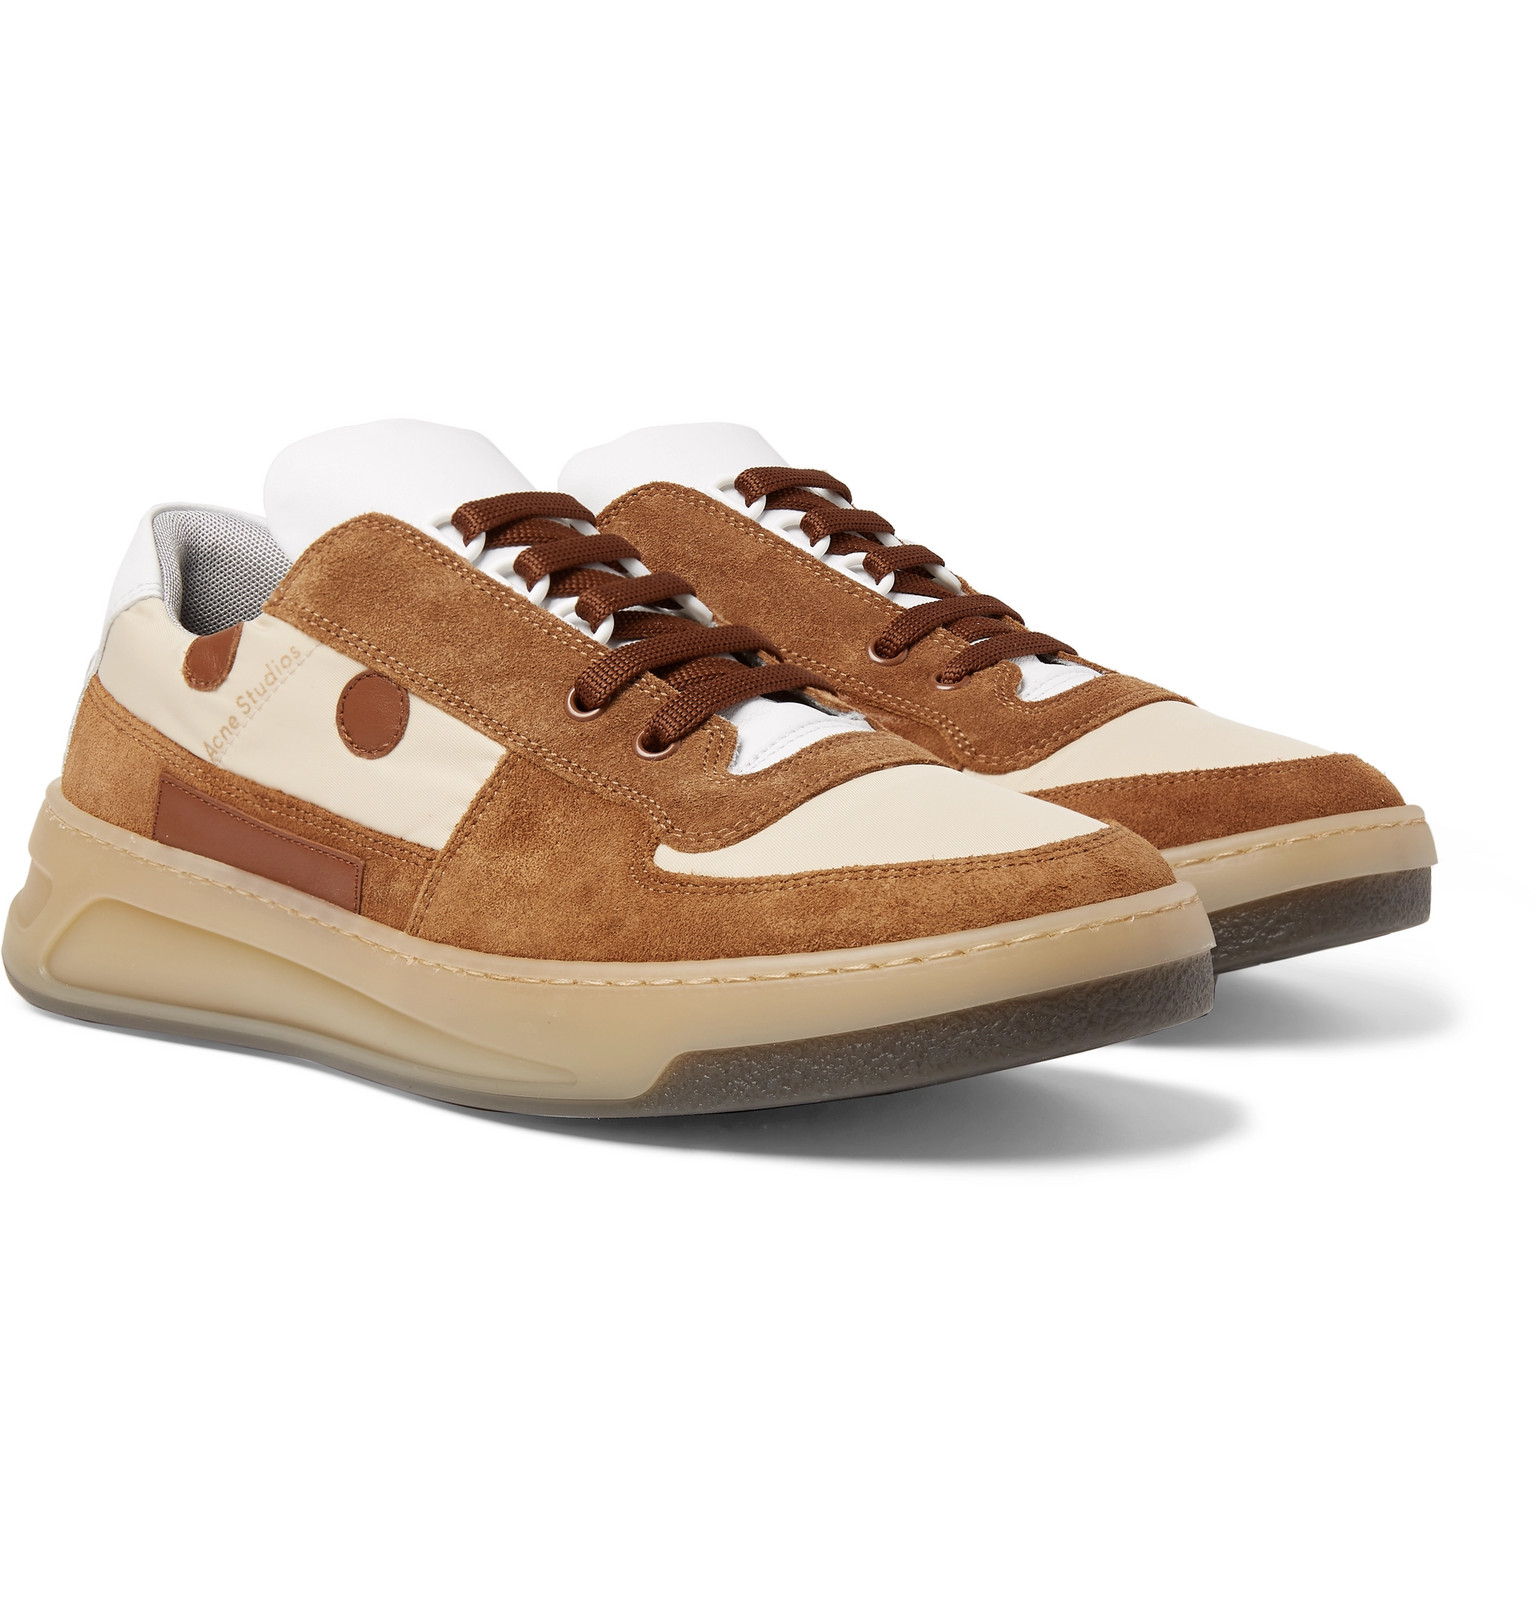 Acne Studios - Leather-Trimmed Suede